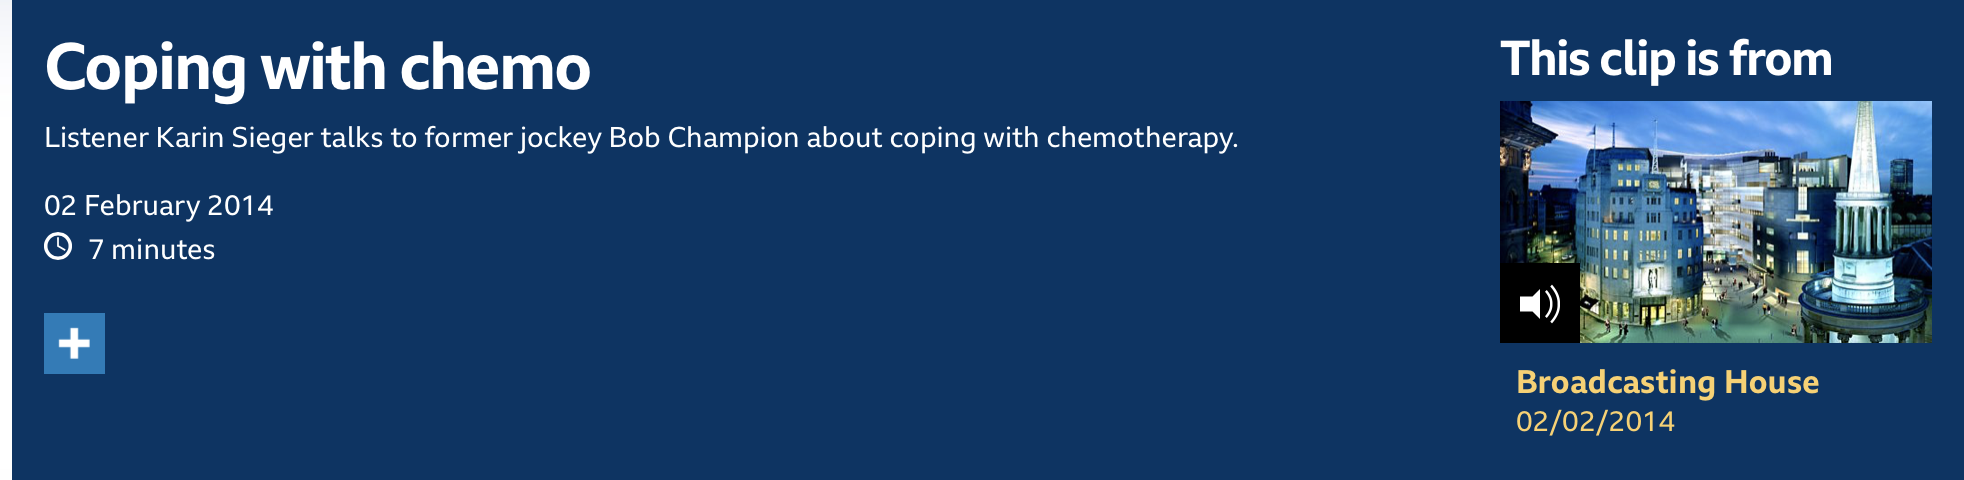 Stopping chemotherapy (c) KarinSieger.com